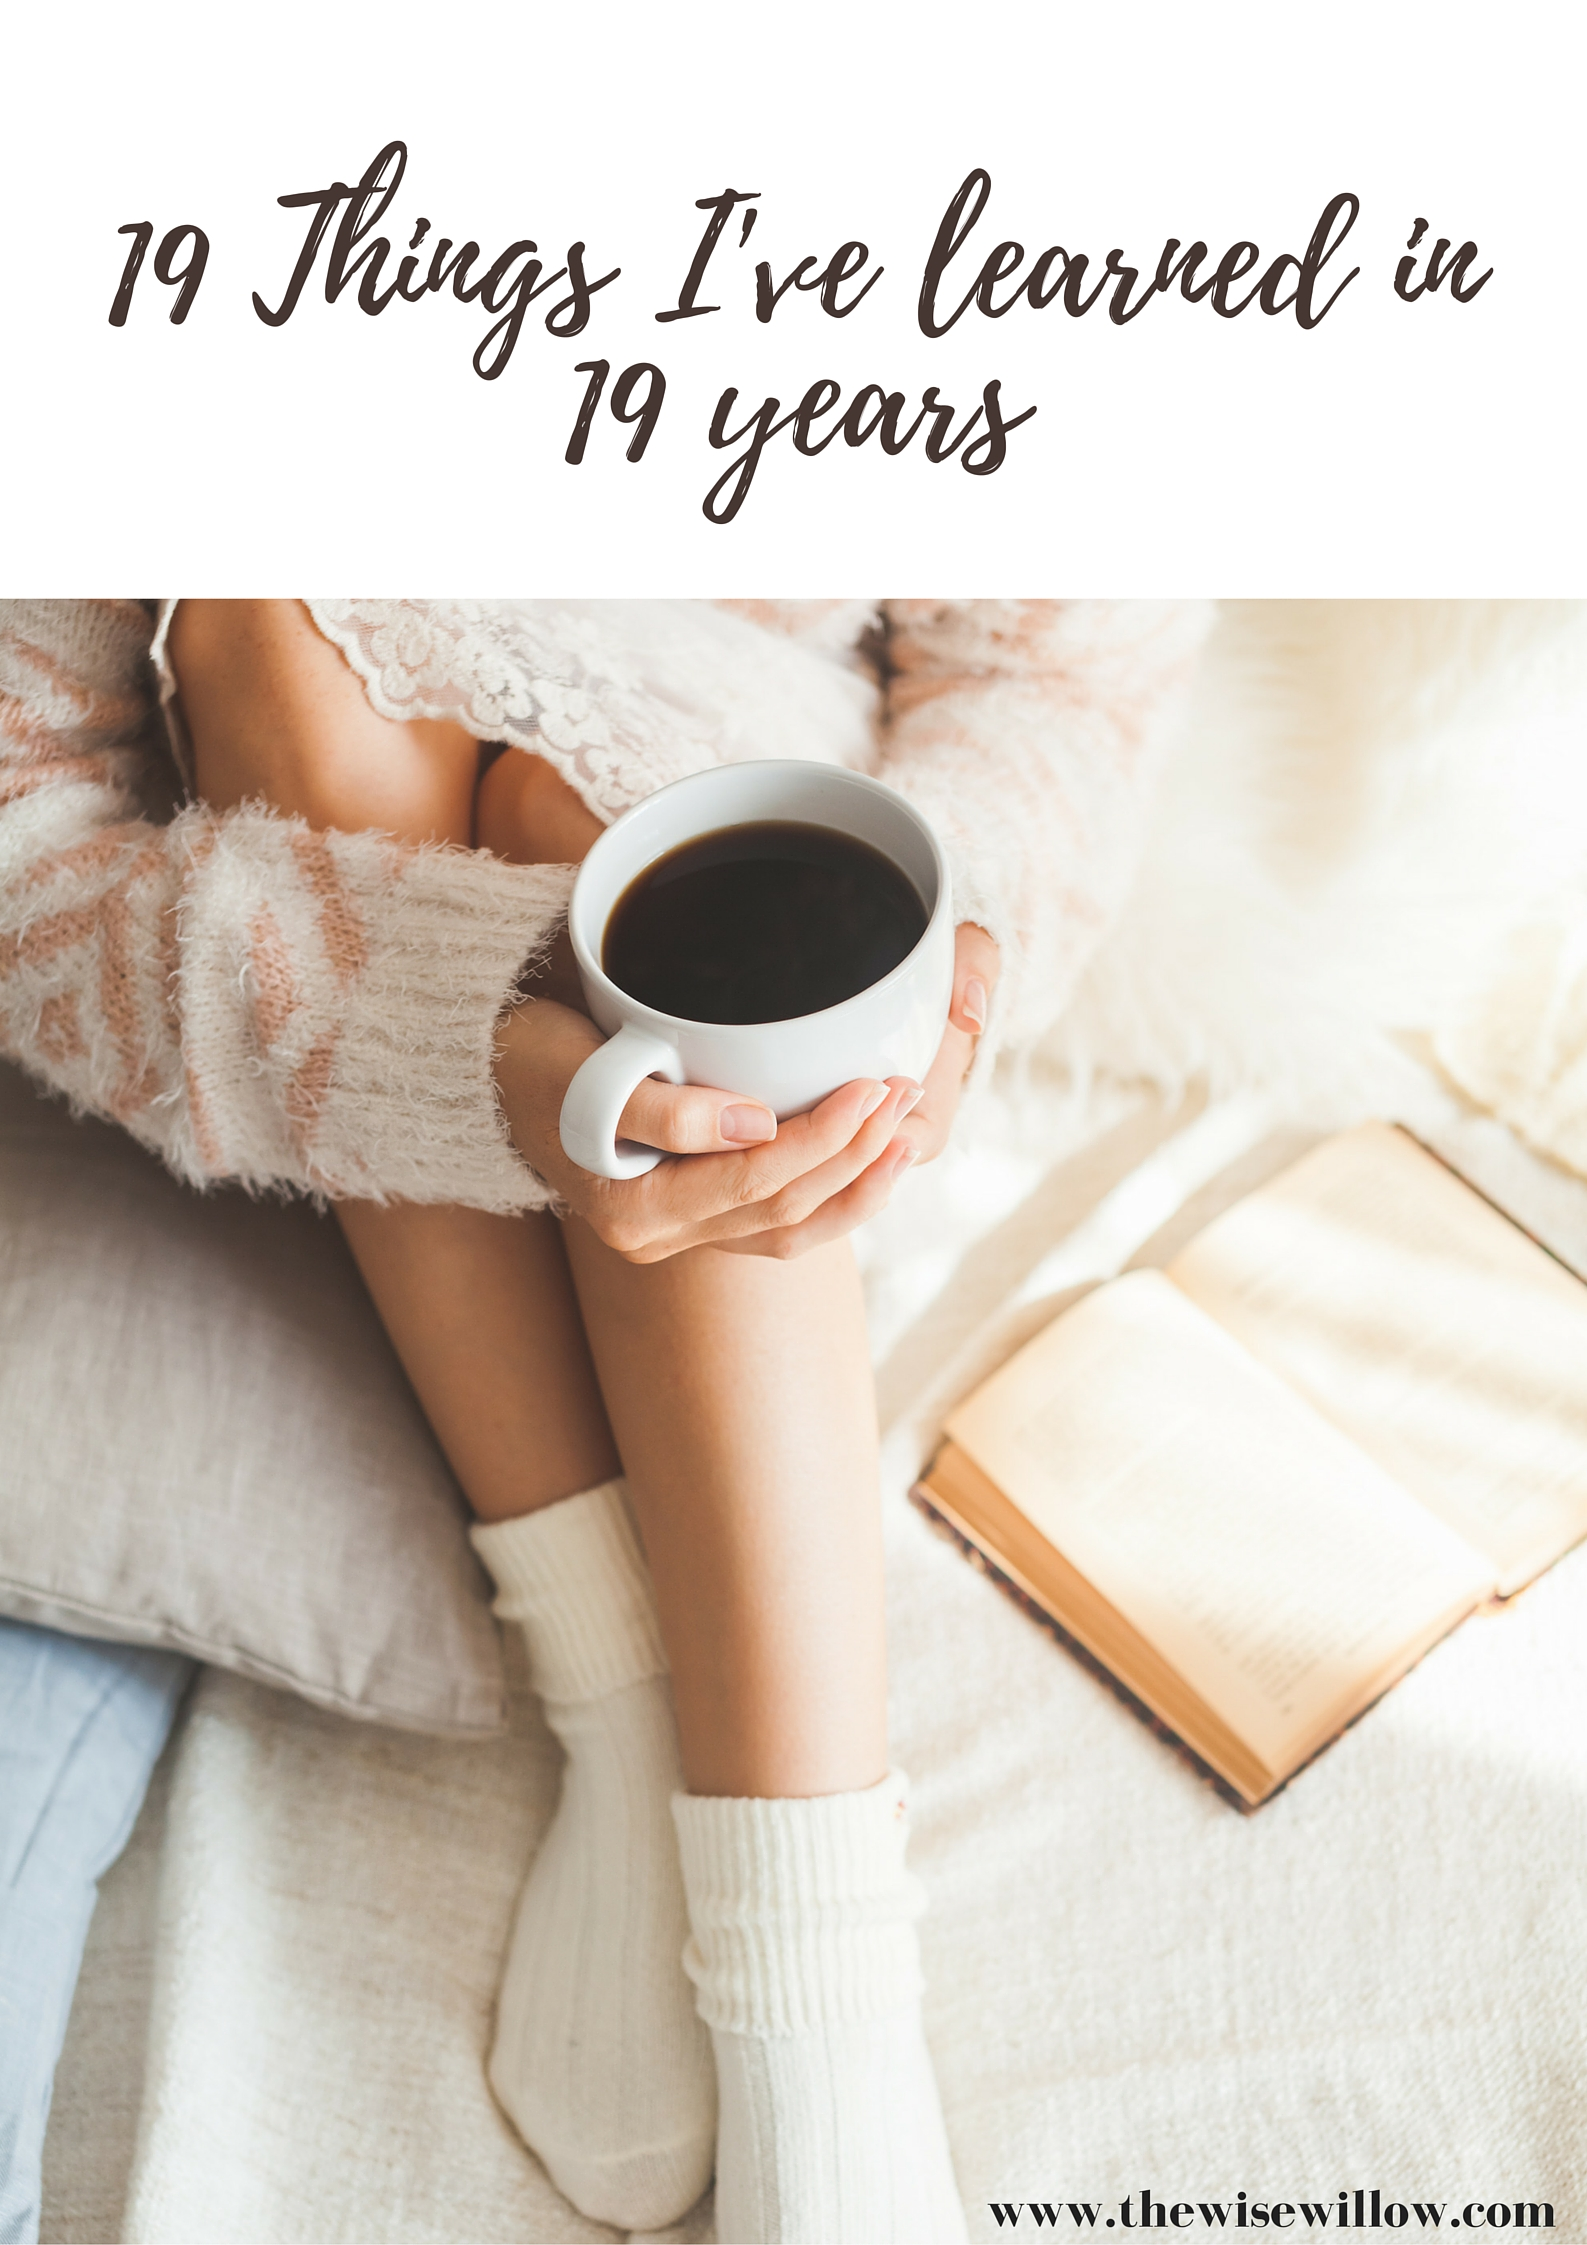 19 Things i've learned in 19 years